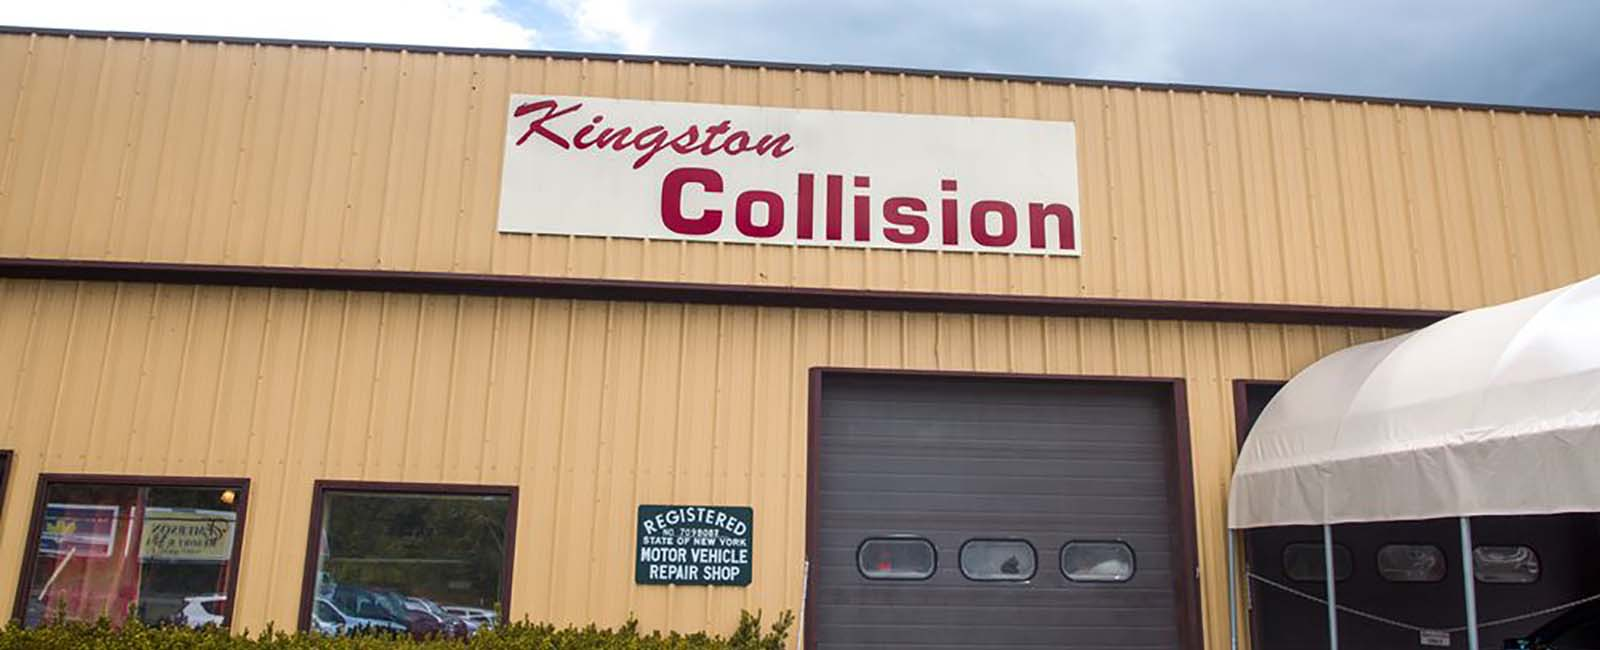 Kingston Hot Rods & Collision Inc.